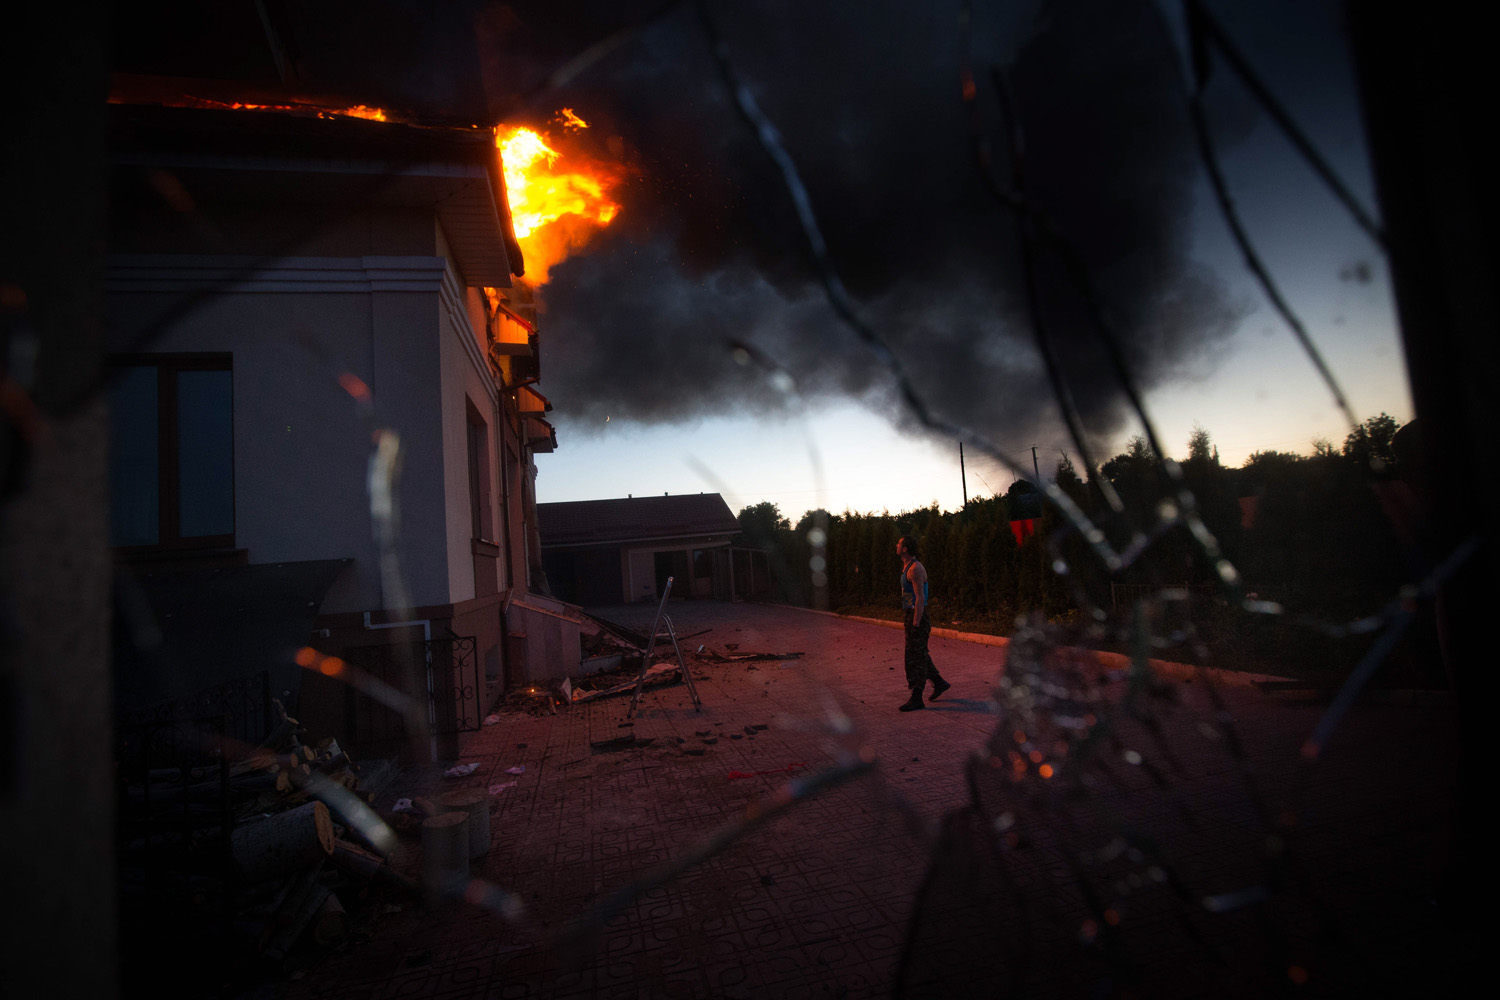 Jul. 2, 2014. A house in the village of Nikolayevka catches fire as a result of a mortar attack on Lugansk suburbs.